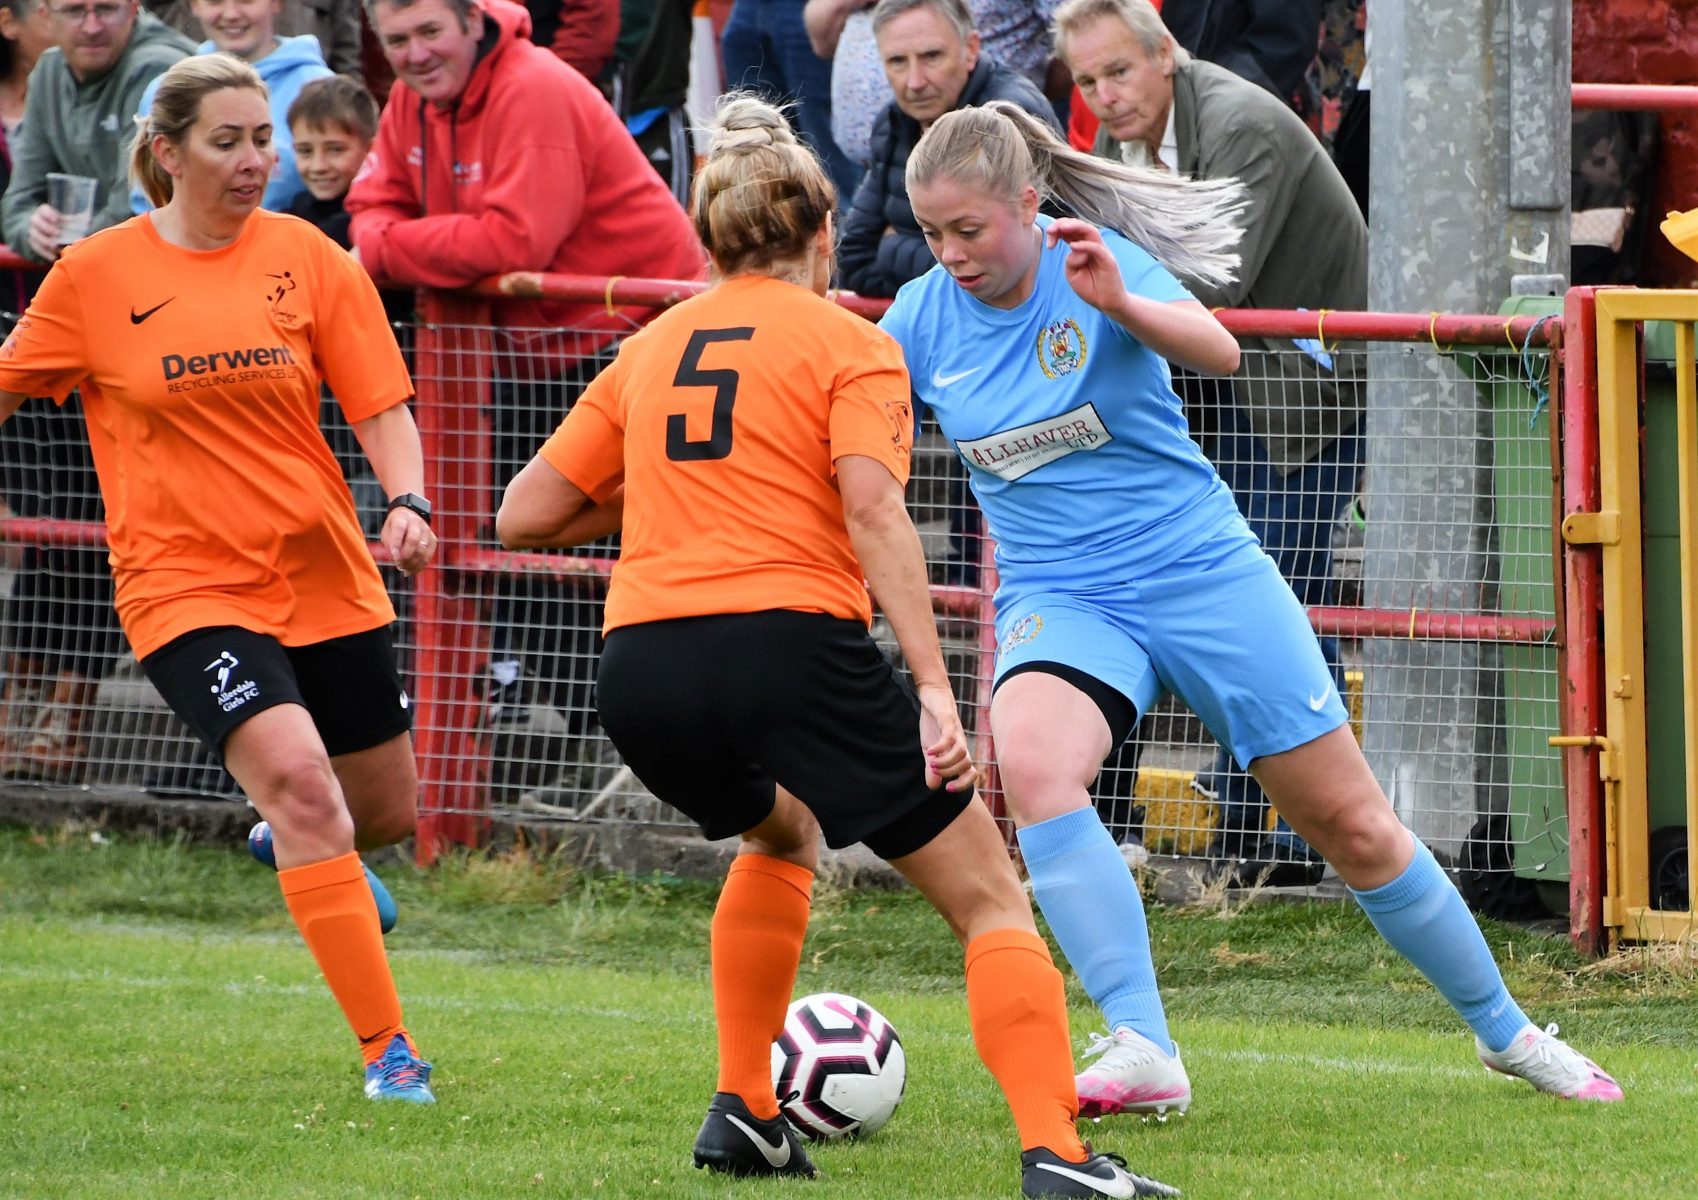 Reds Festival of Football - Reds Ladies v Allerdale Wildcats